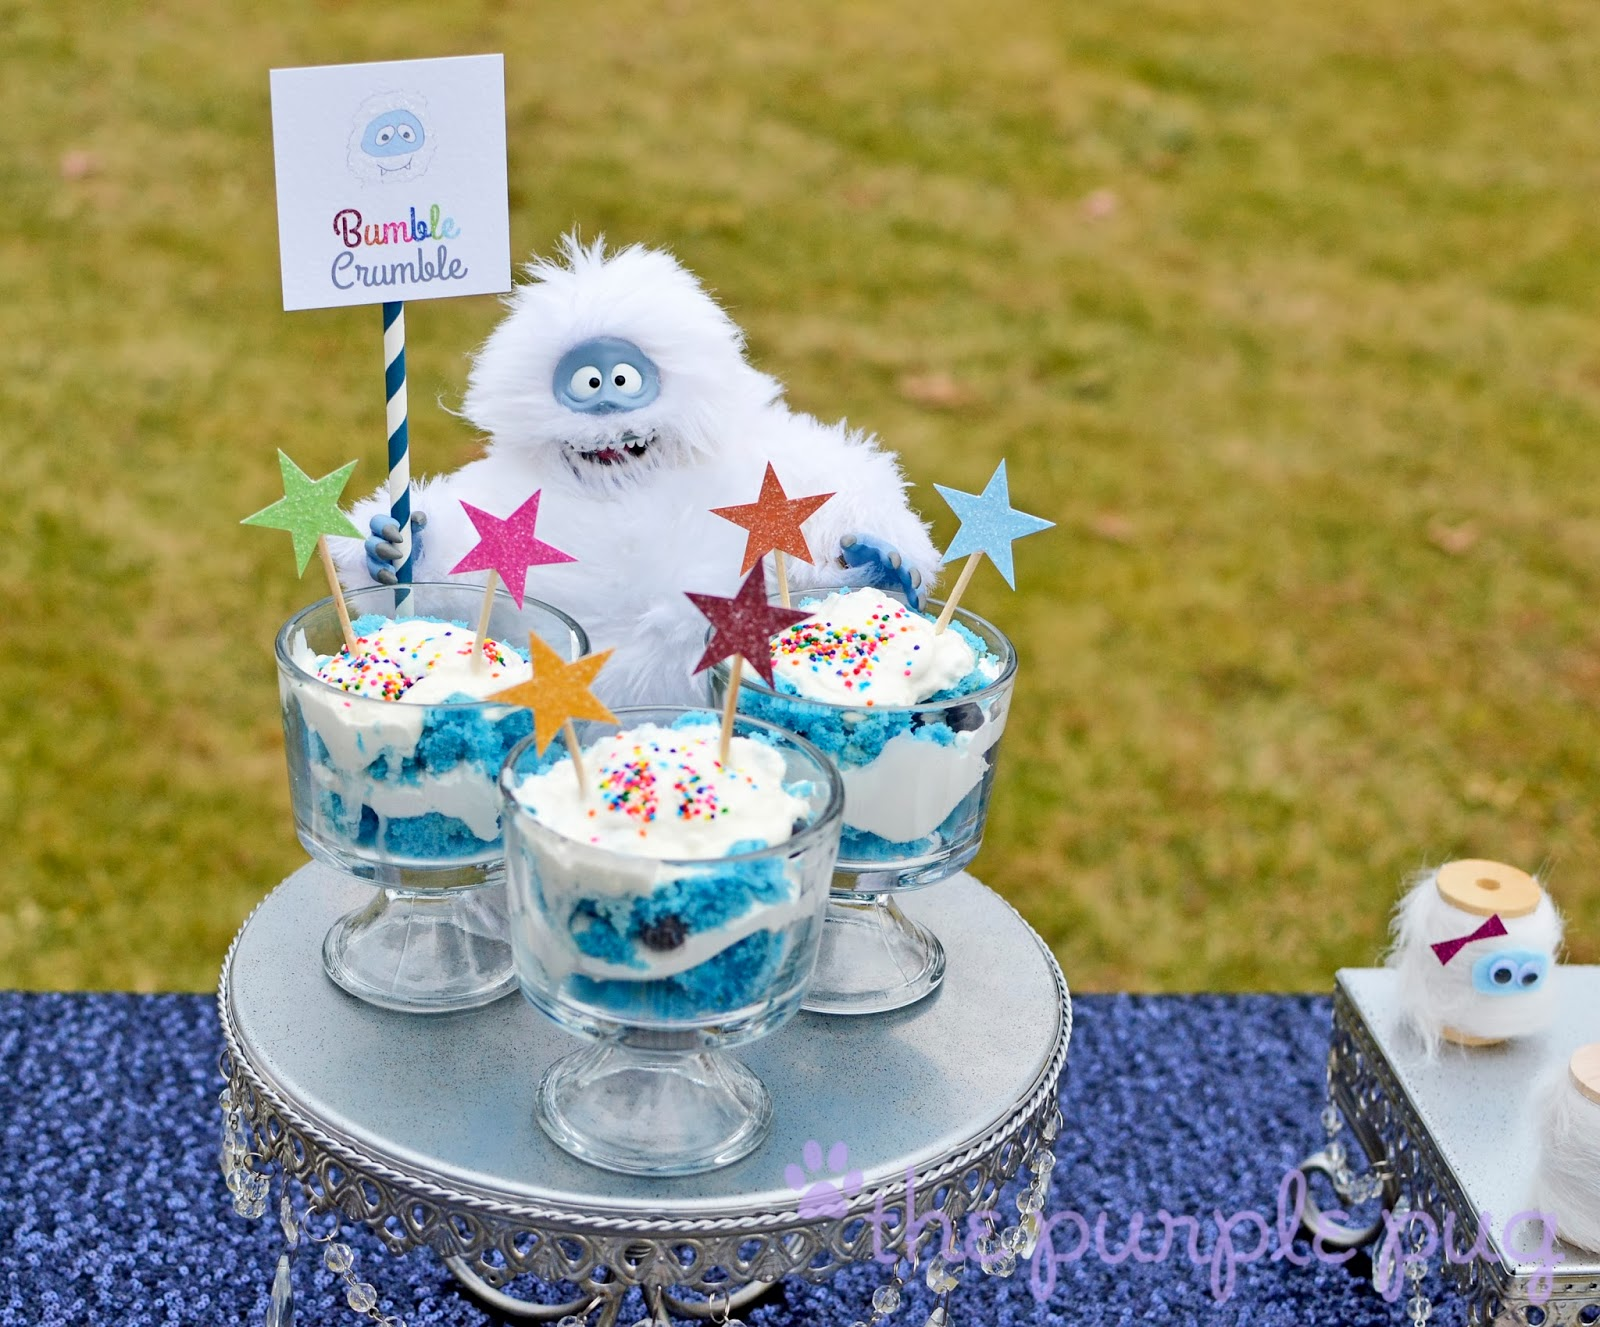 BEHOLD the Bumble Bash! {Yeti Love Playdate Inspiration}